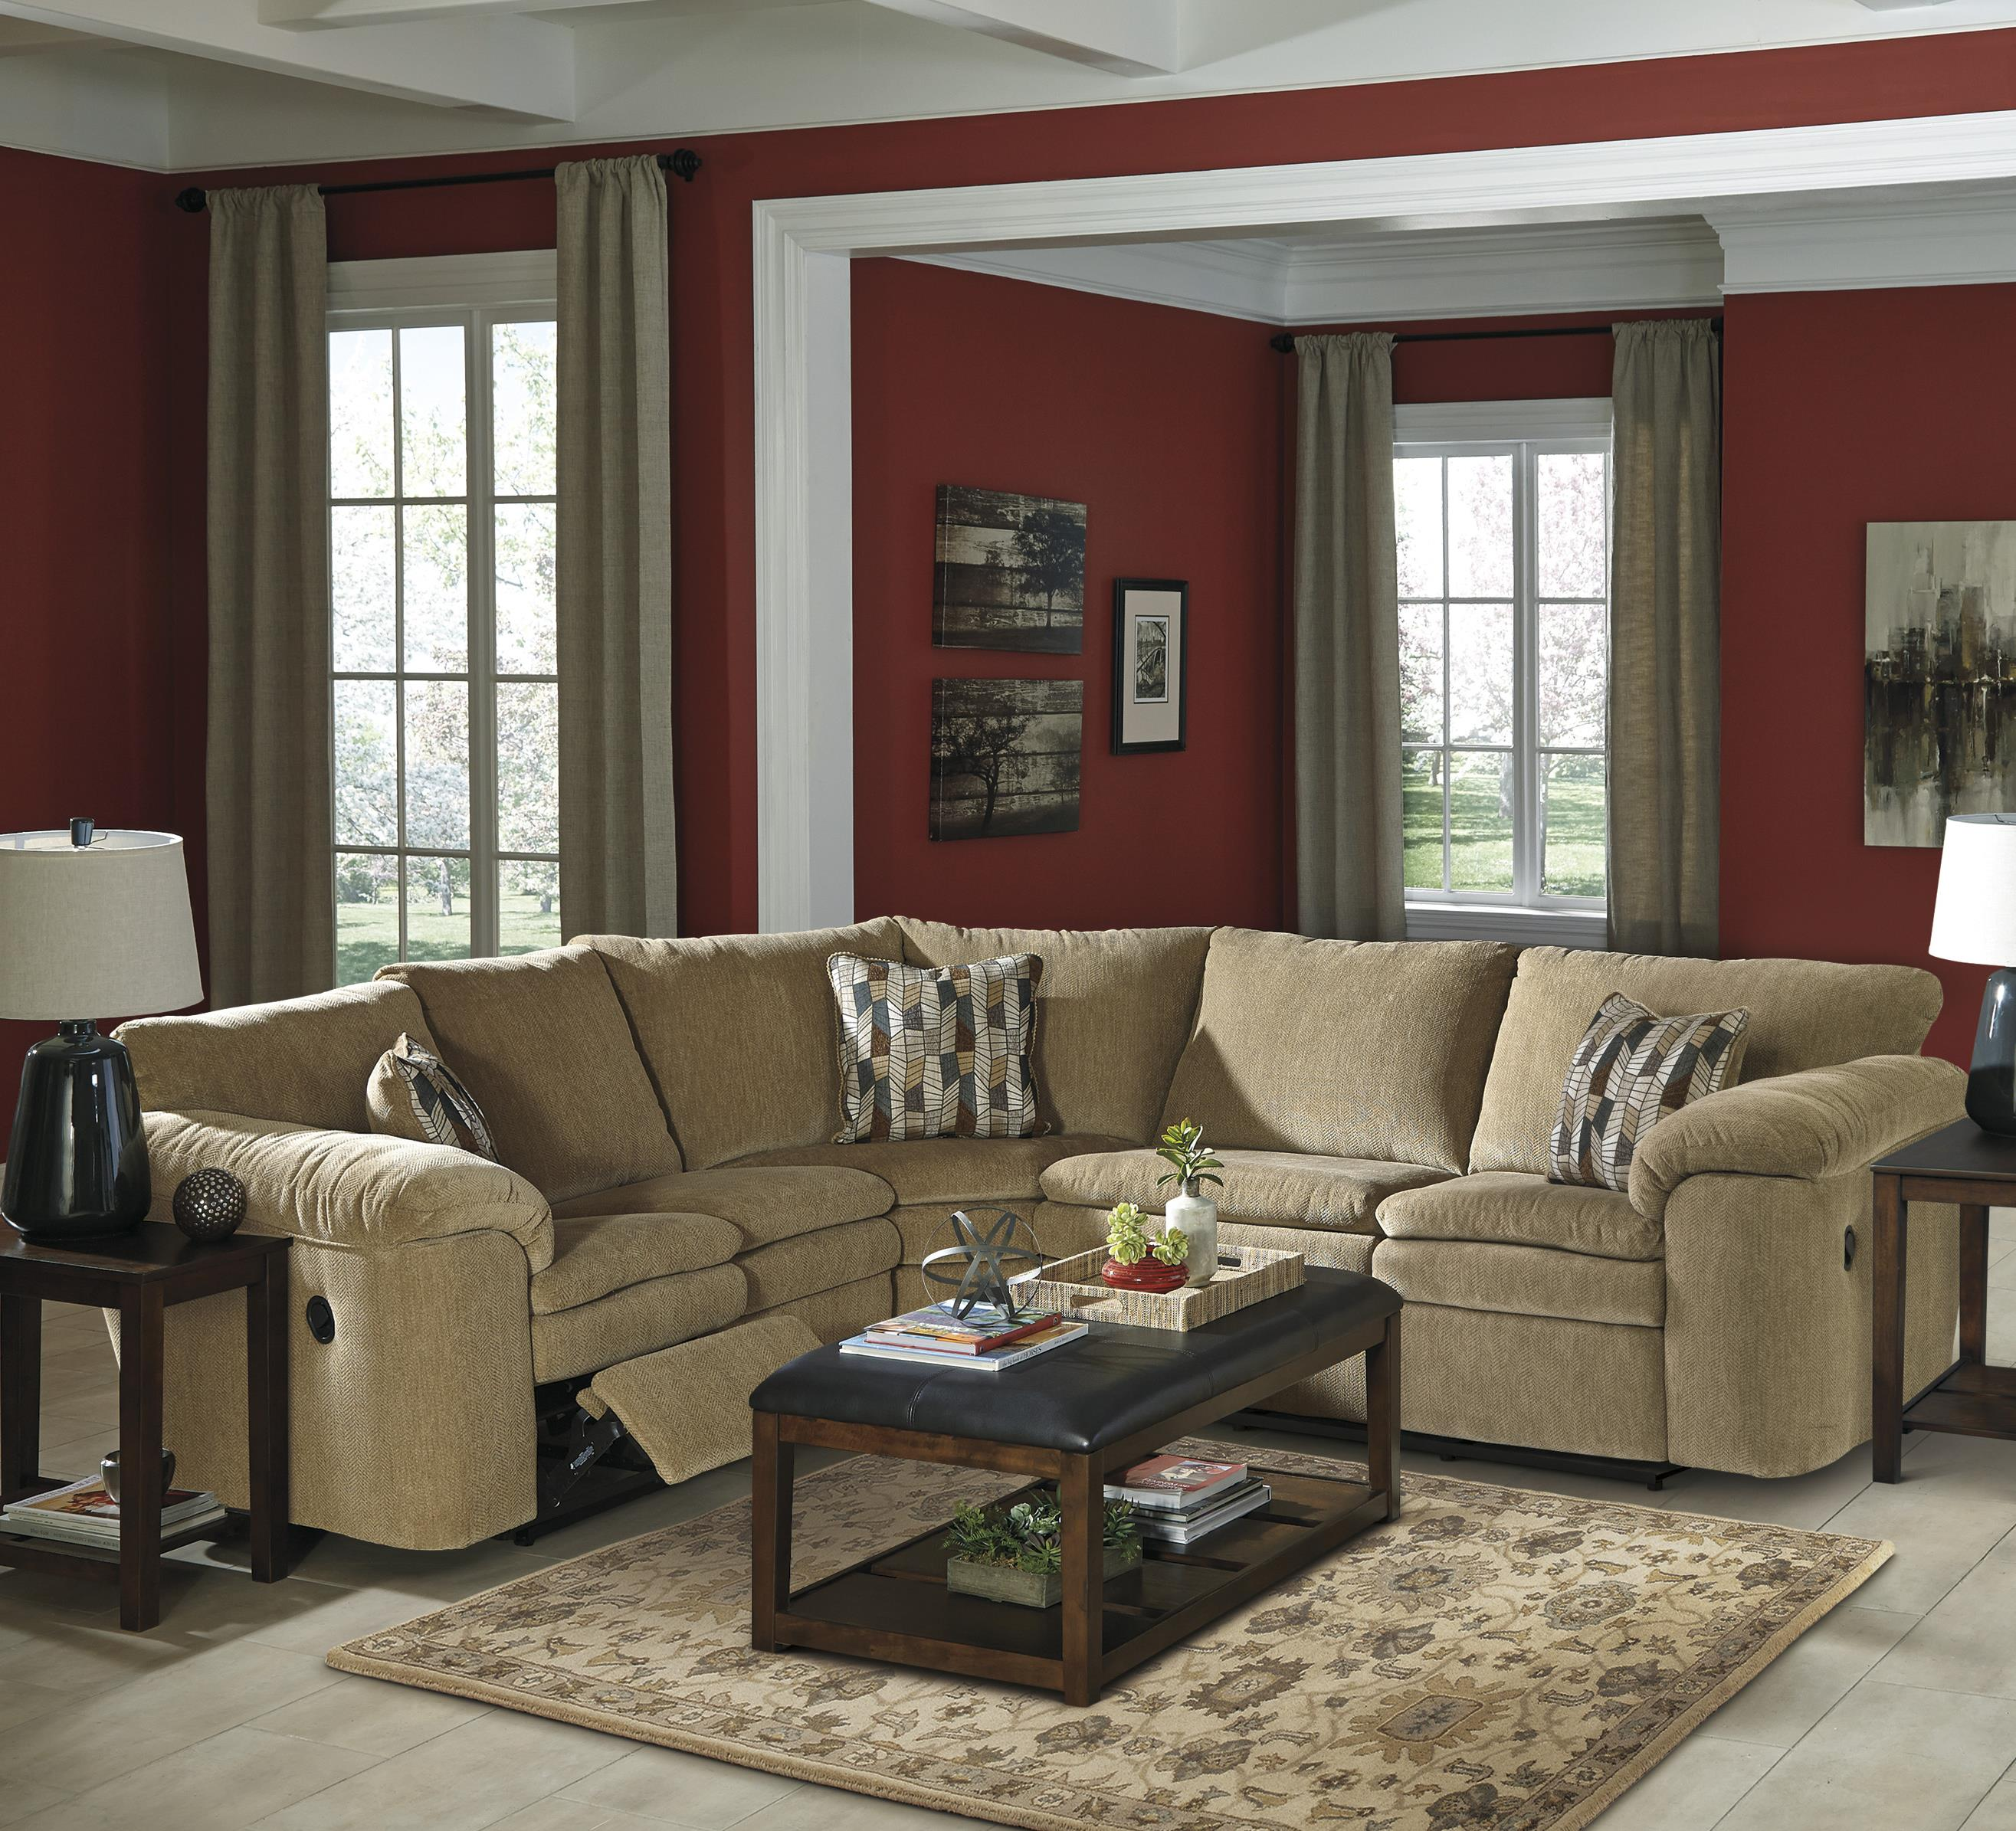 Signature Design by Ashley Coats 3-Piece Reclining Sectional - Item Number: 4410084+77+85